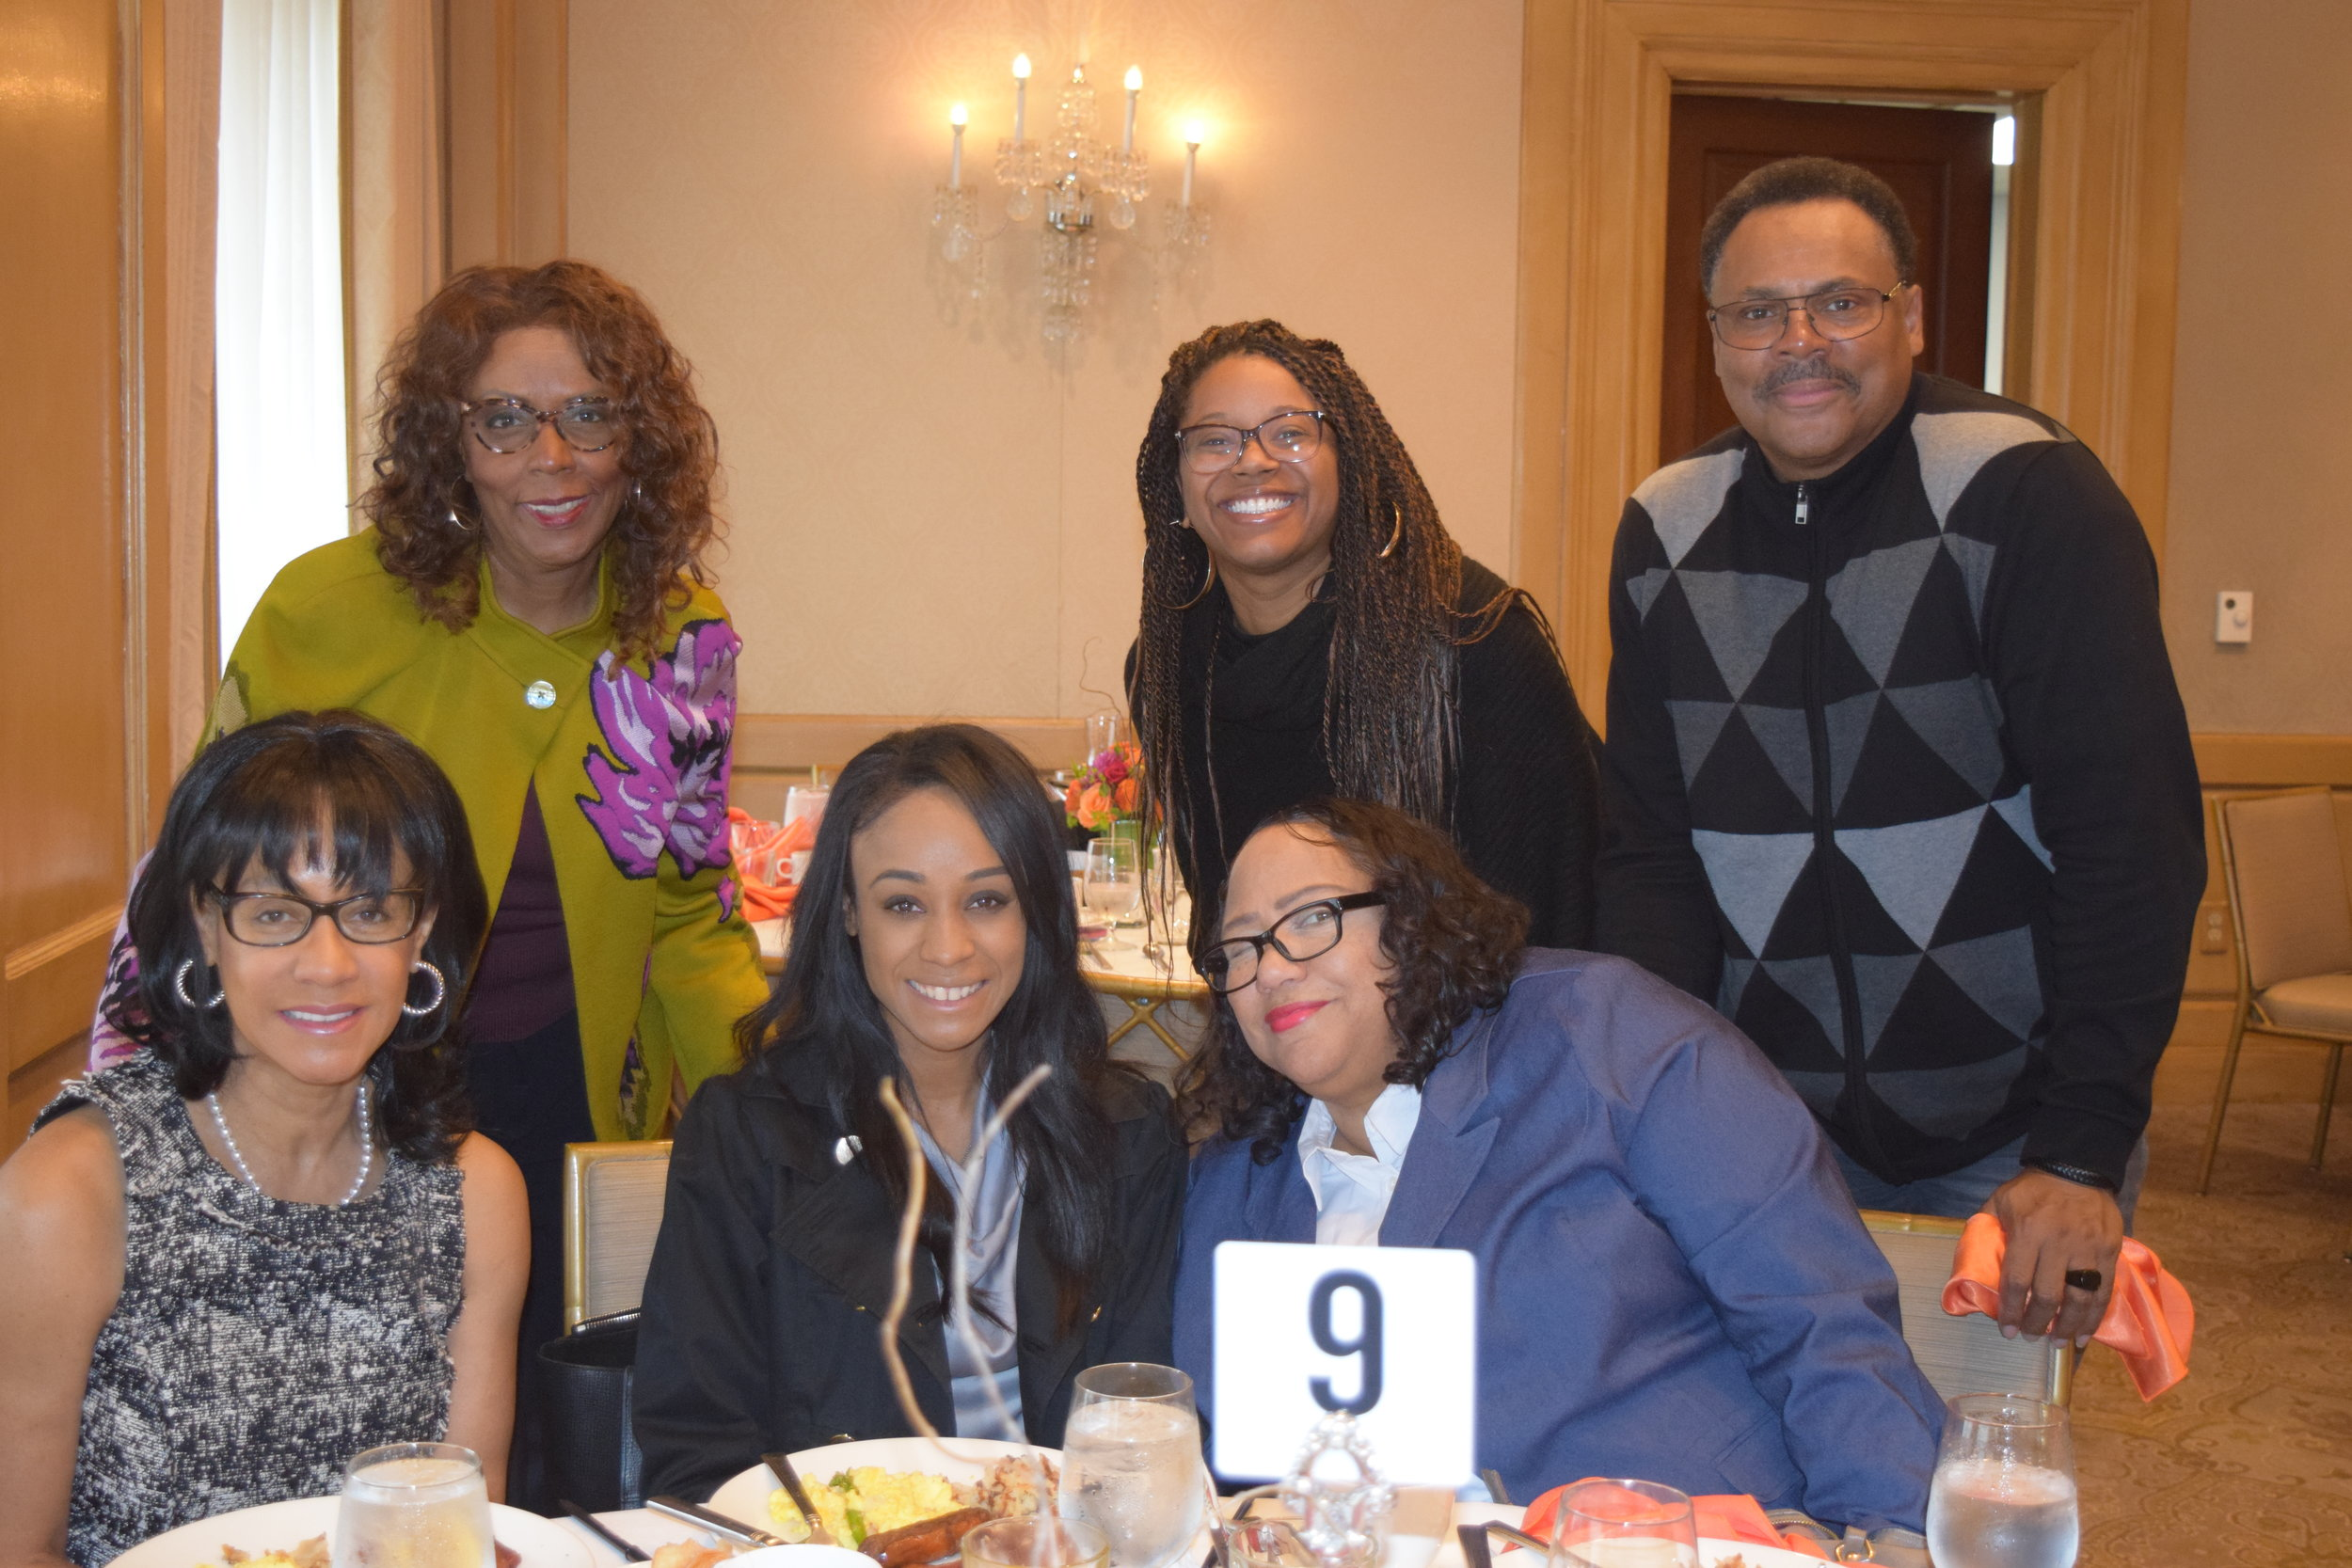 Board member Alyssa Moten and her guests joined us at the breakfast.